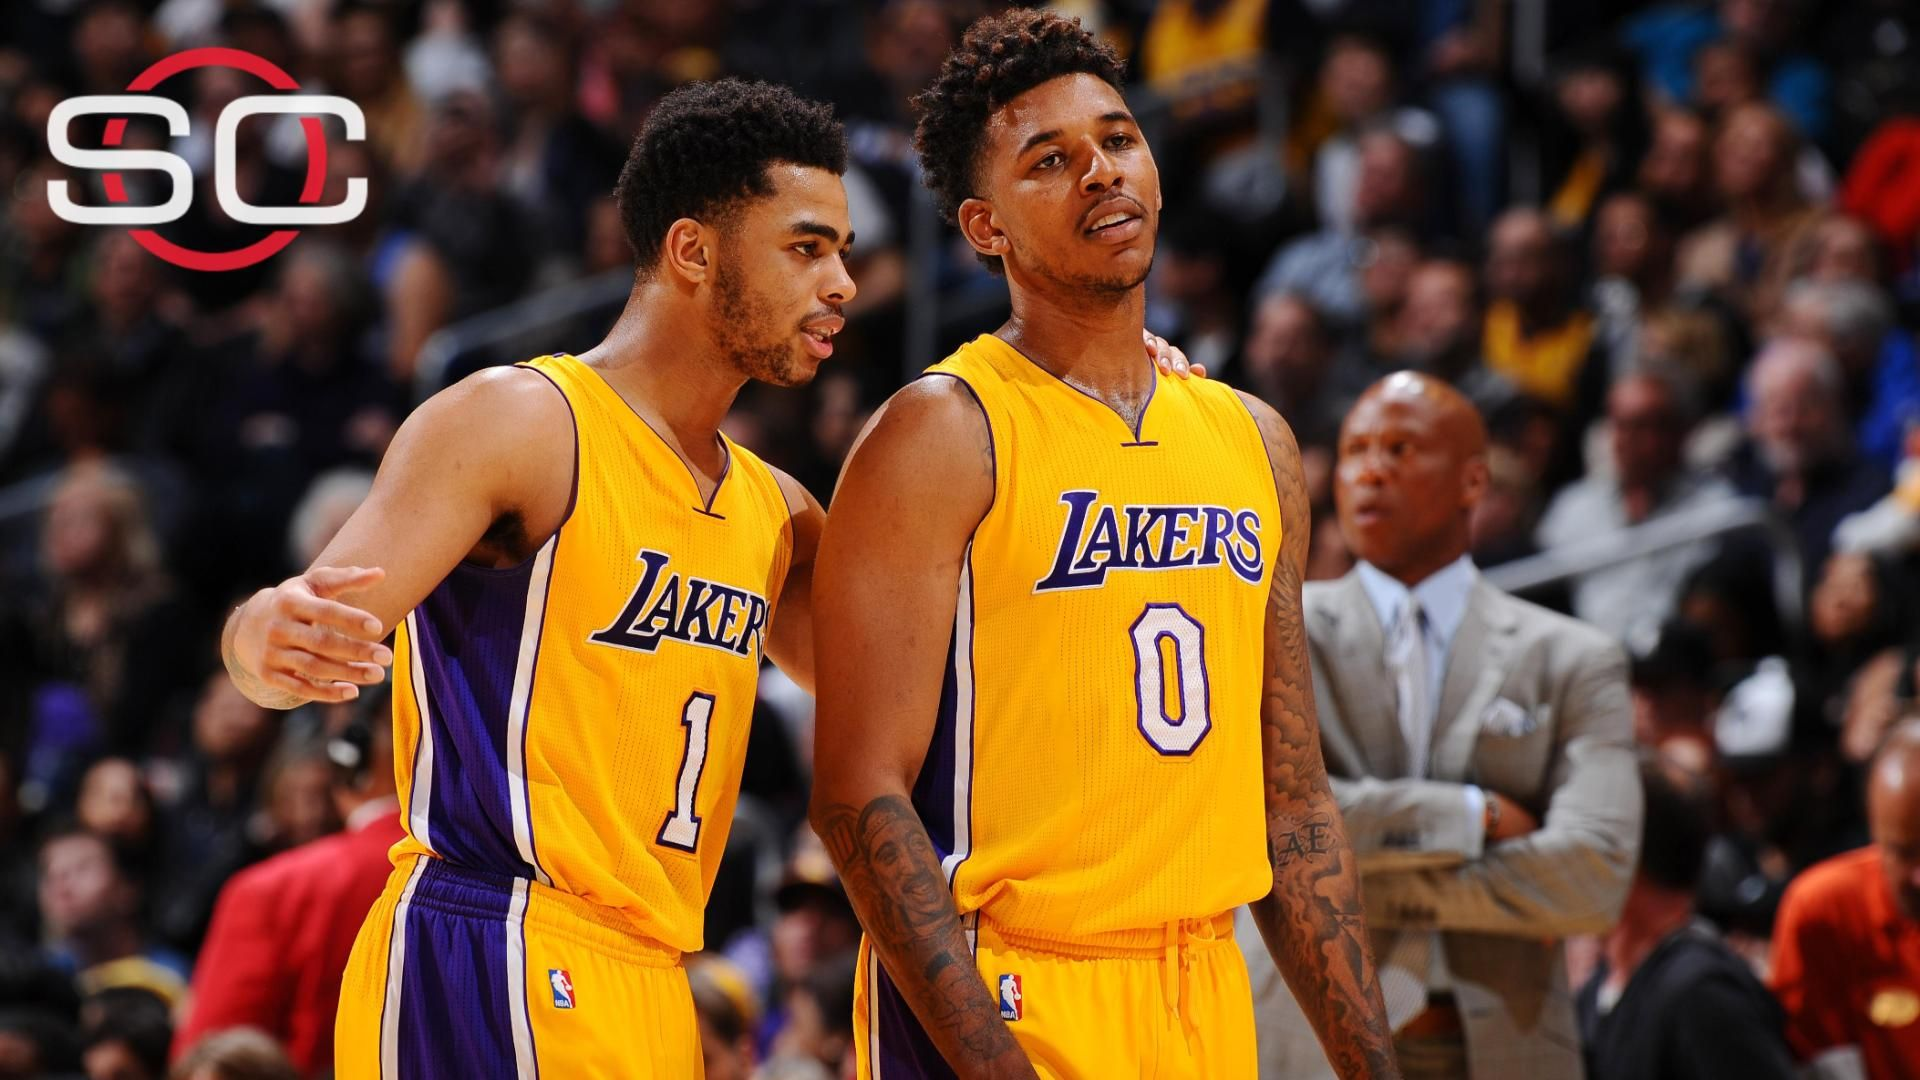 Jackson on Lakers: 'Supposed to be brotherhood'